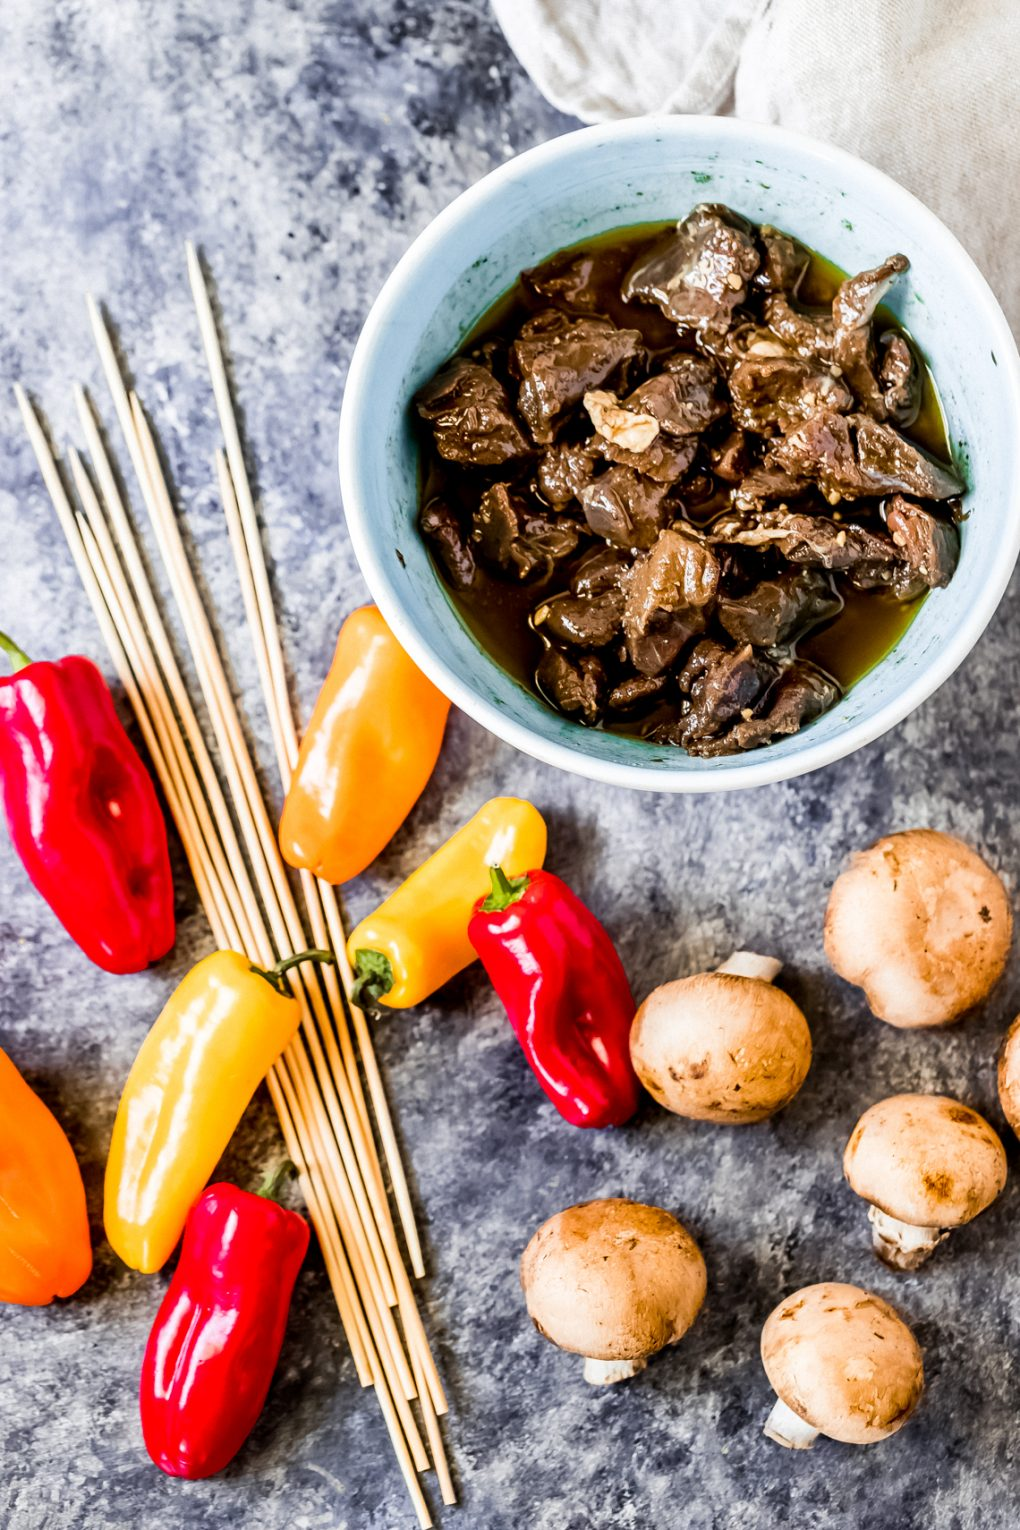 ingredients to make grilled venison kabobs